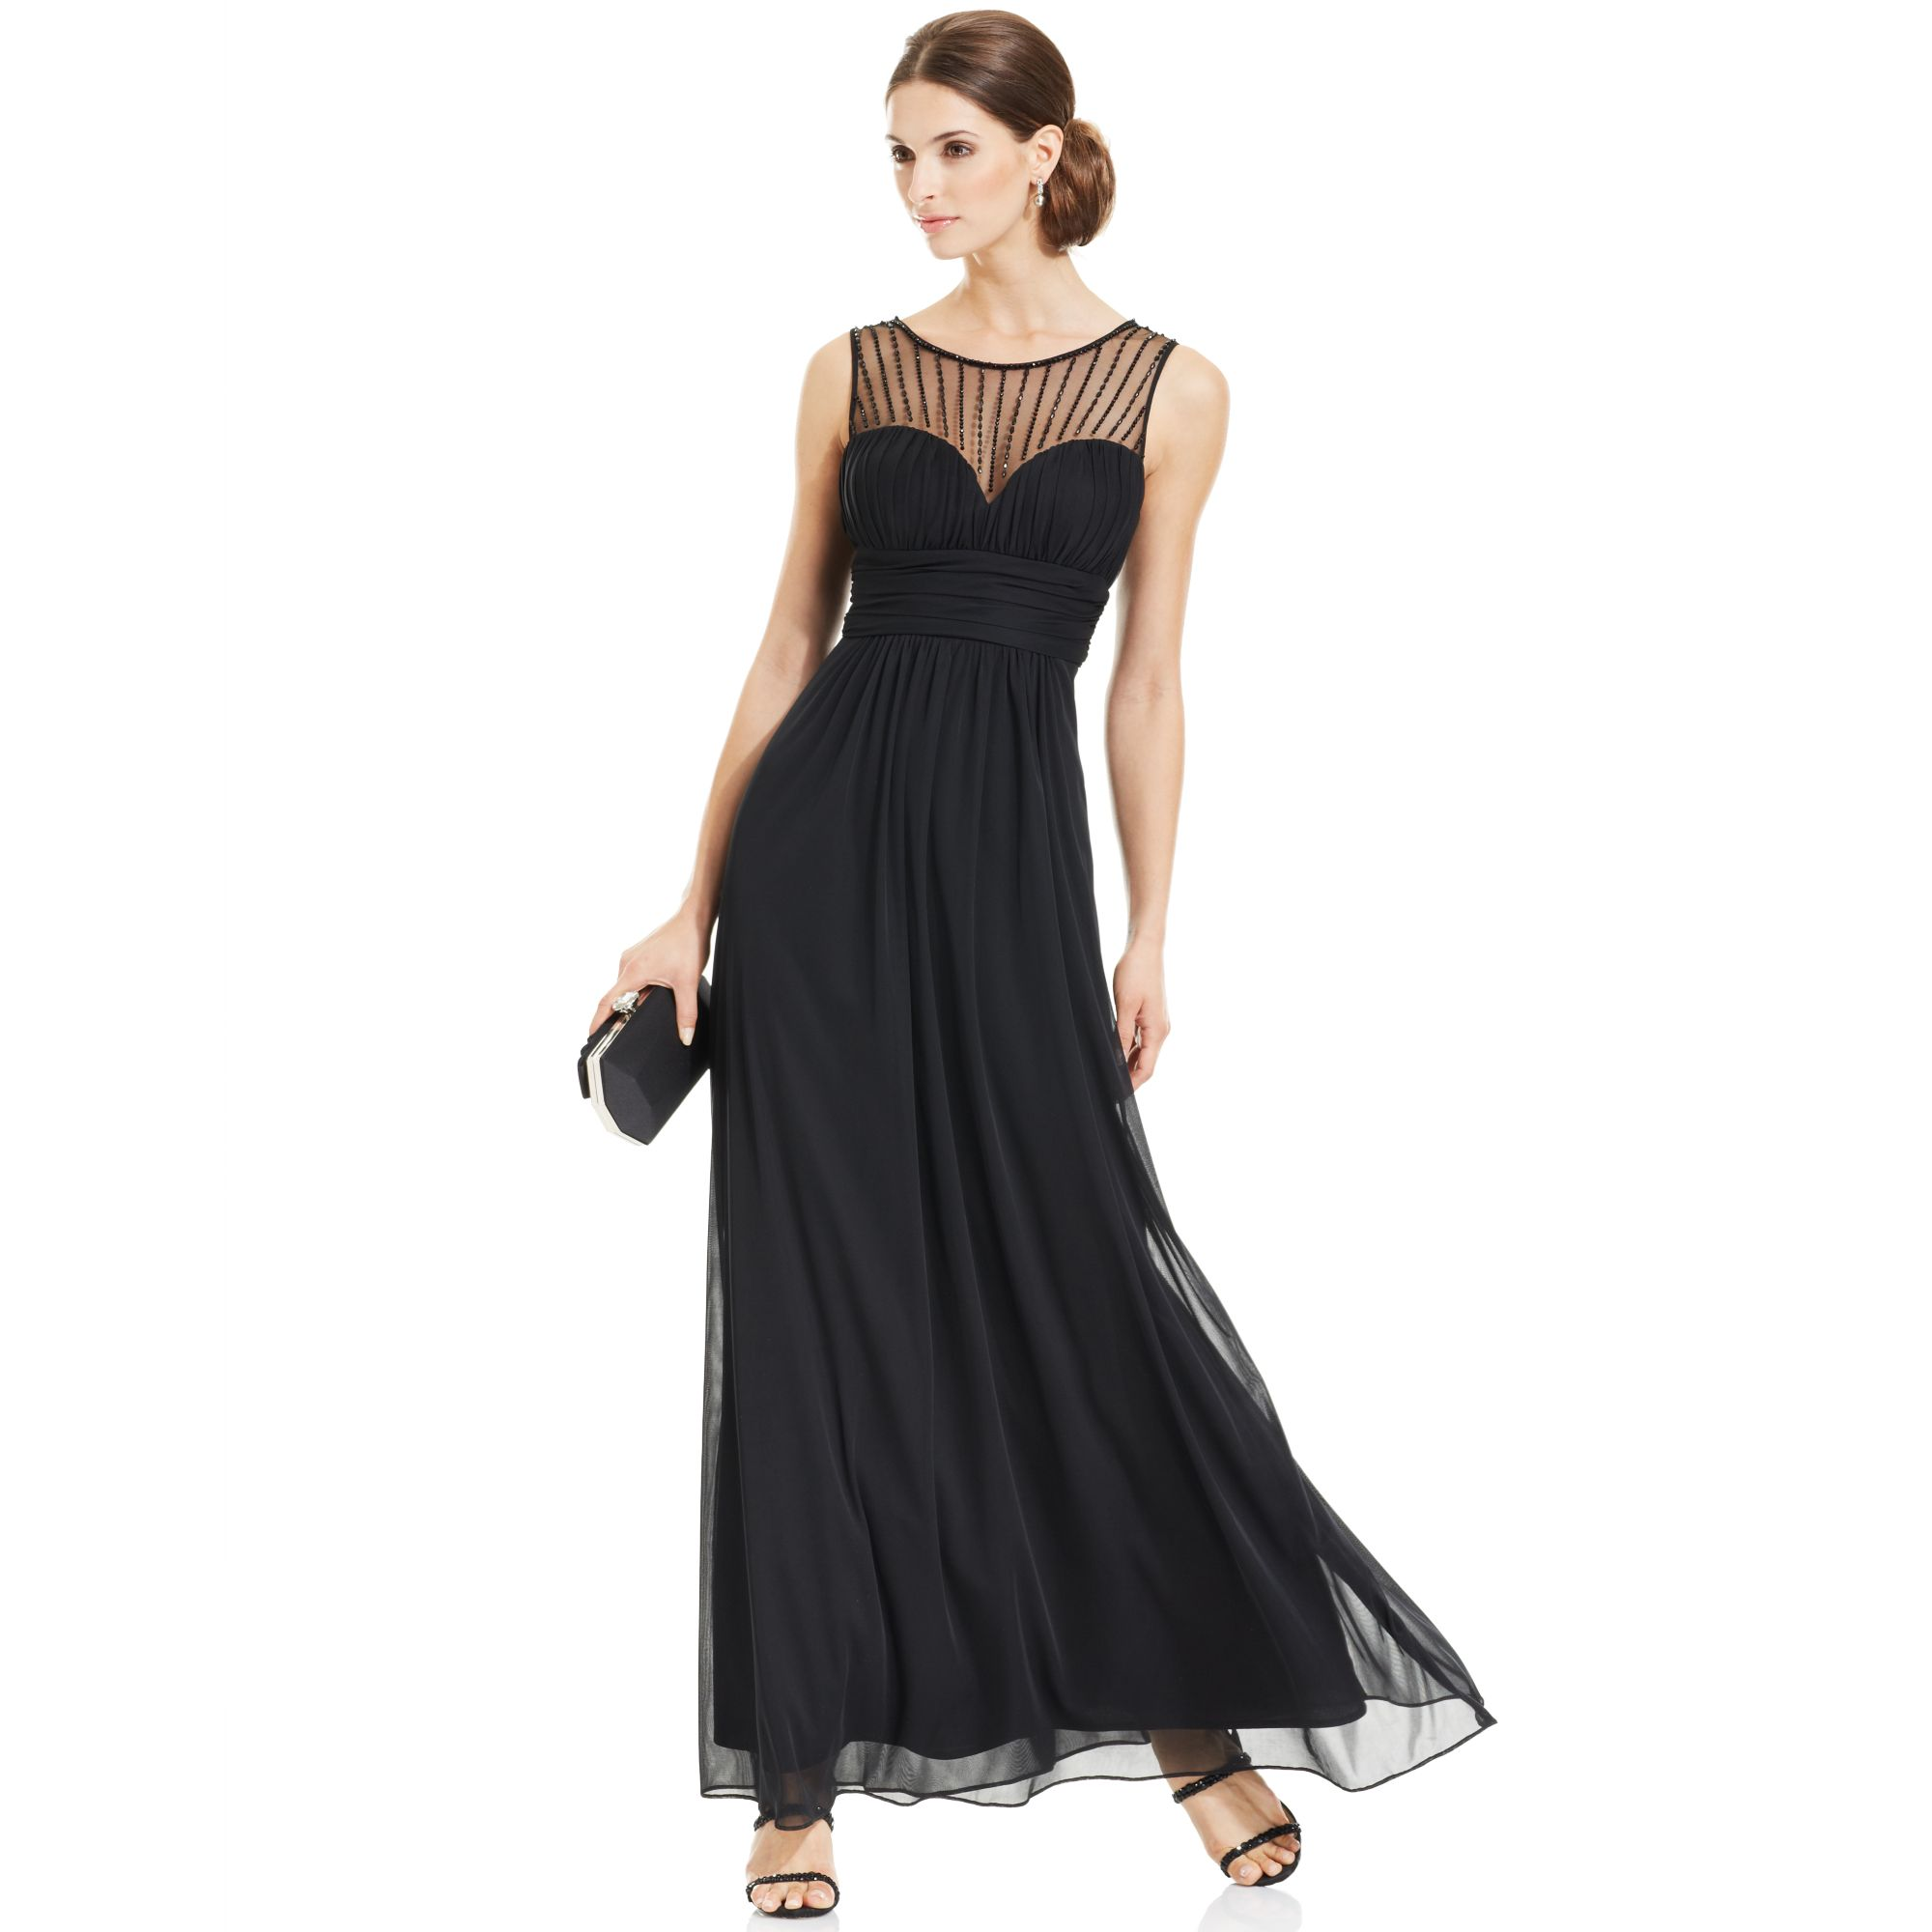 xscape sleeveless illusion sweetheart gown in black